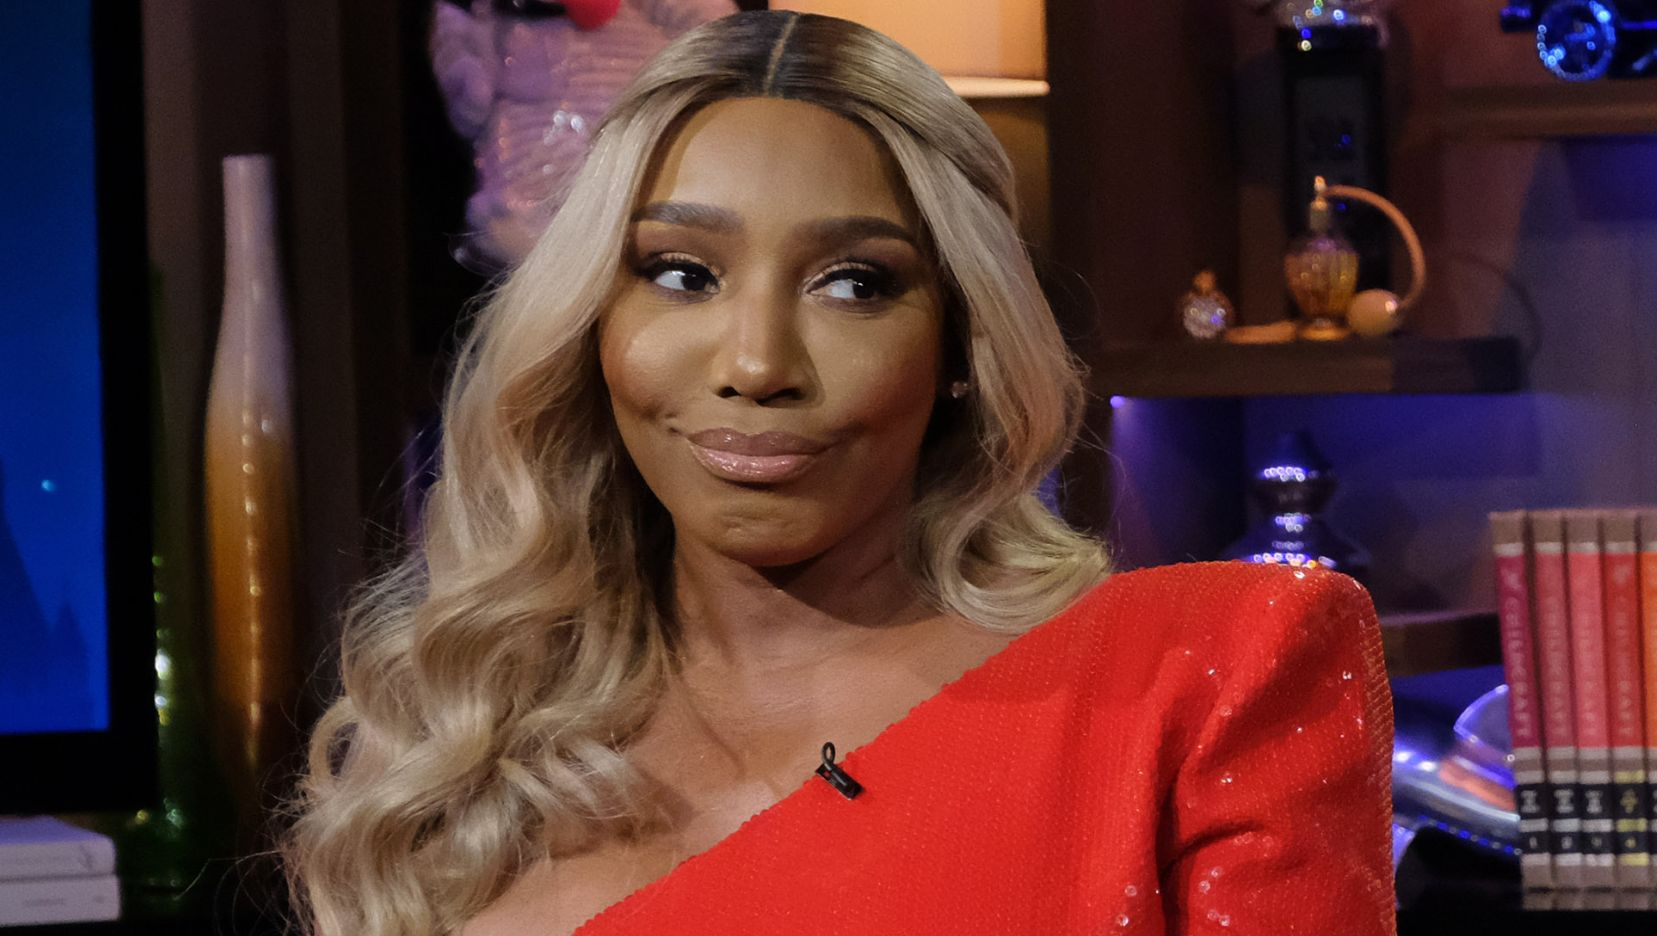 NeNe Leakes' Fans Slam Her Hard After This Post In Which She Asks For Help